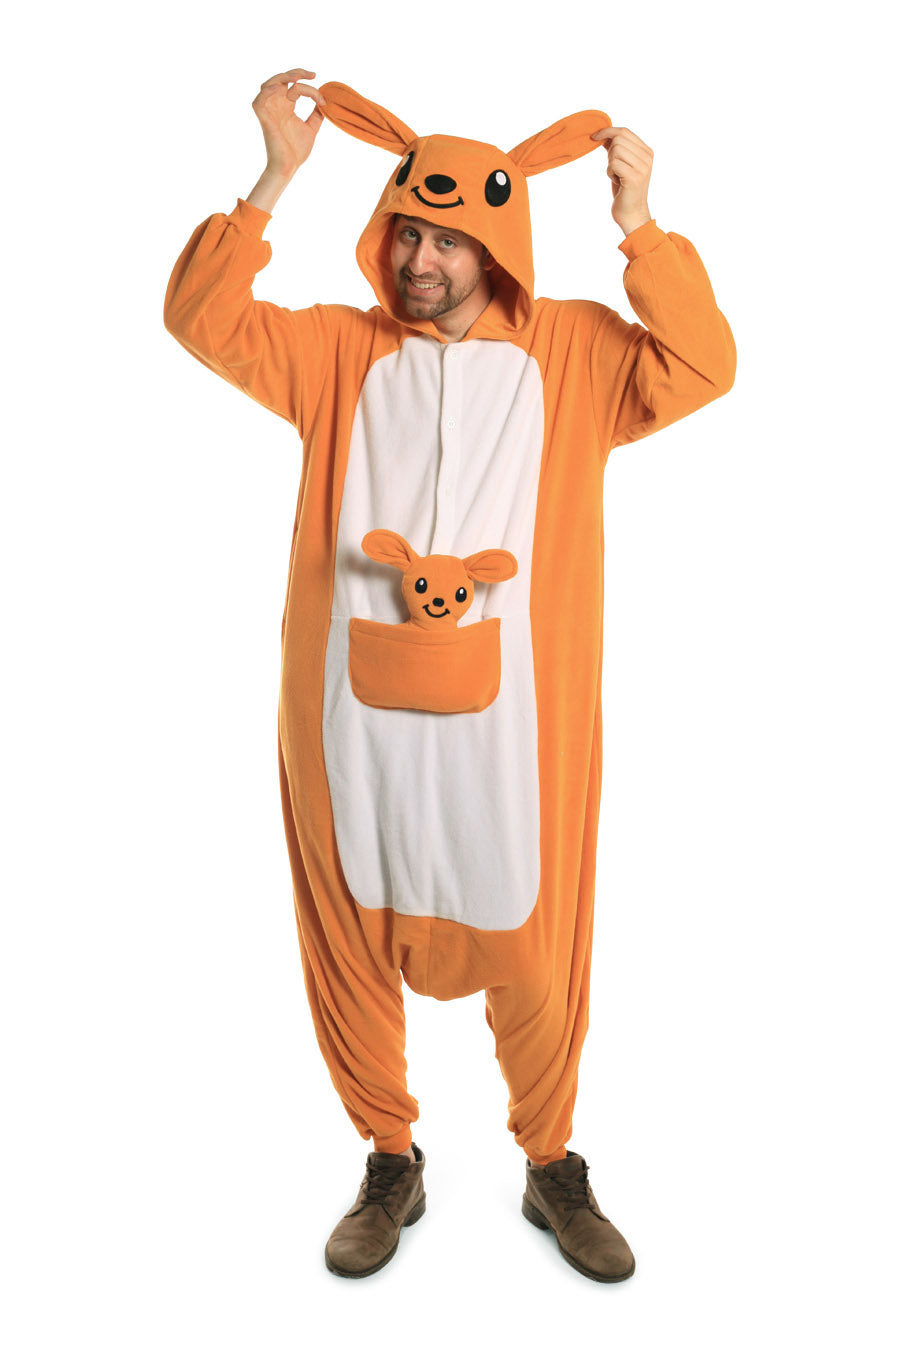 Kangaroo X-Tall Animal Kigurumi Adult Onesie Costume Pajamas Main